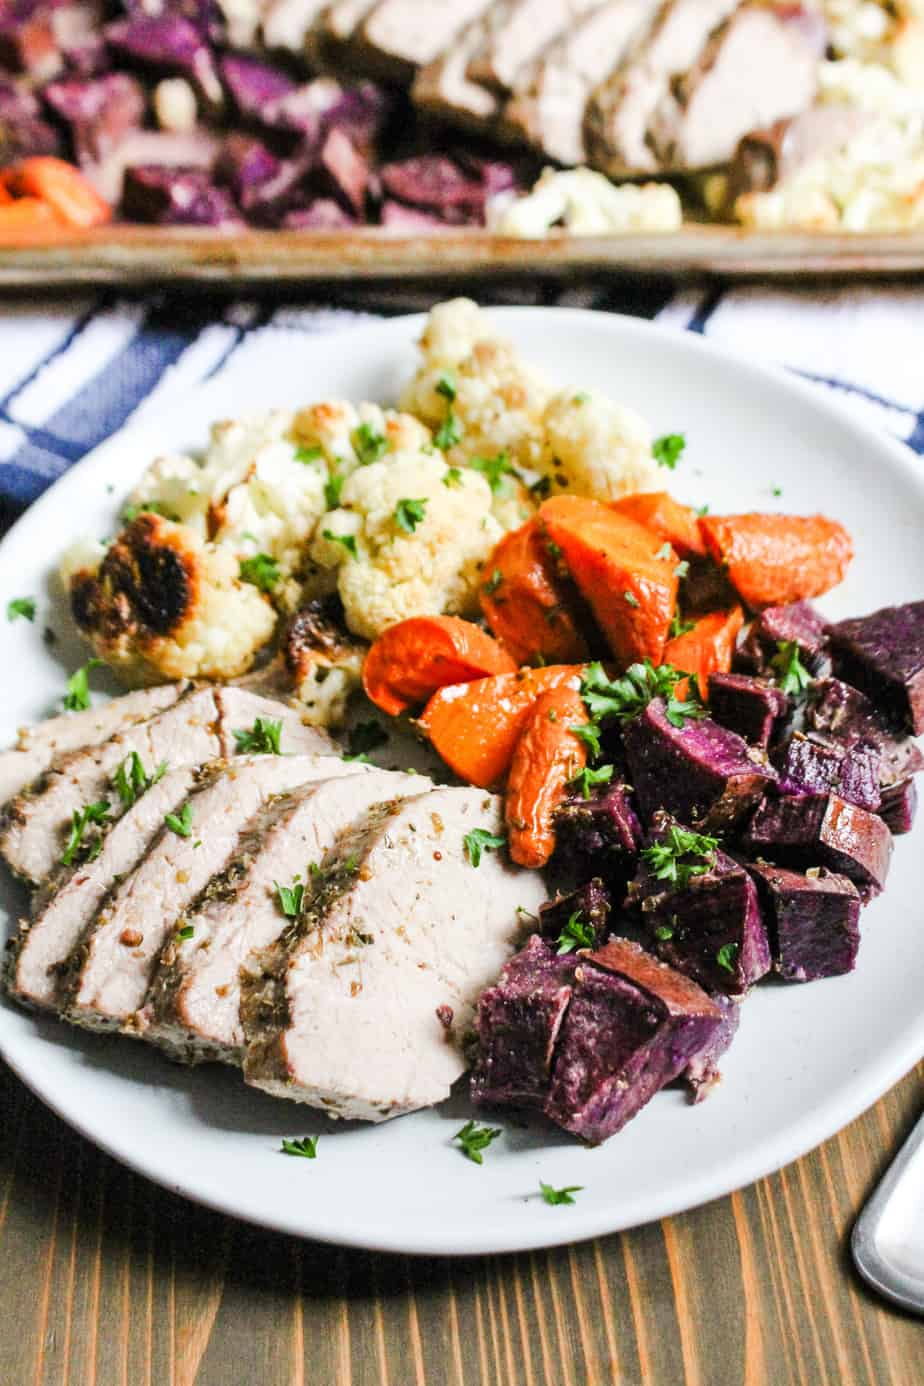 plate with cooked pork, cauliflower, carrots, and purple sweet potatoes